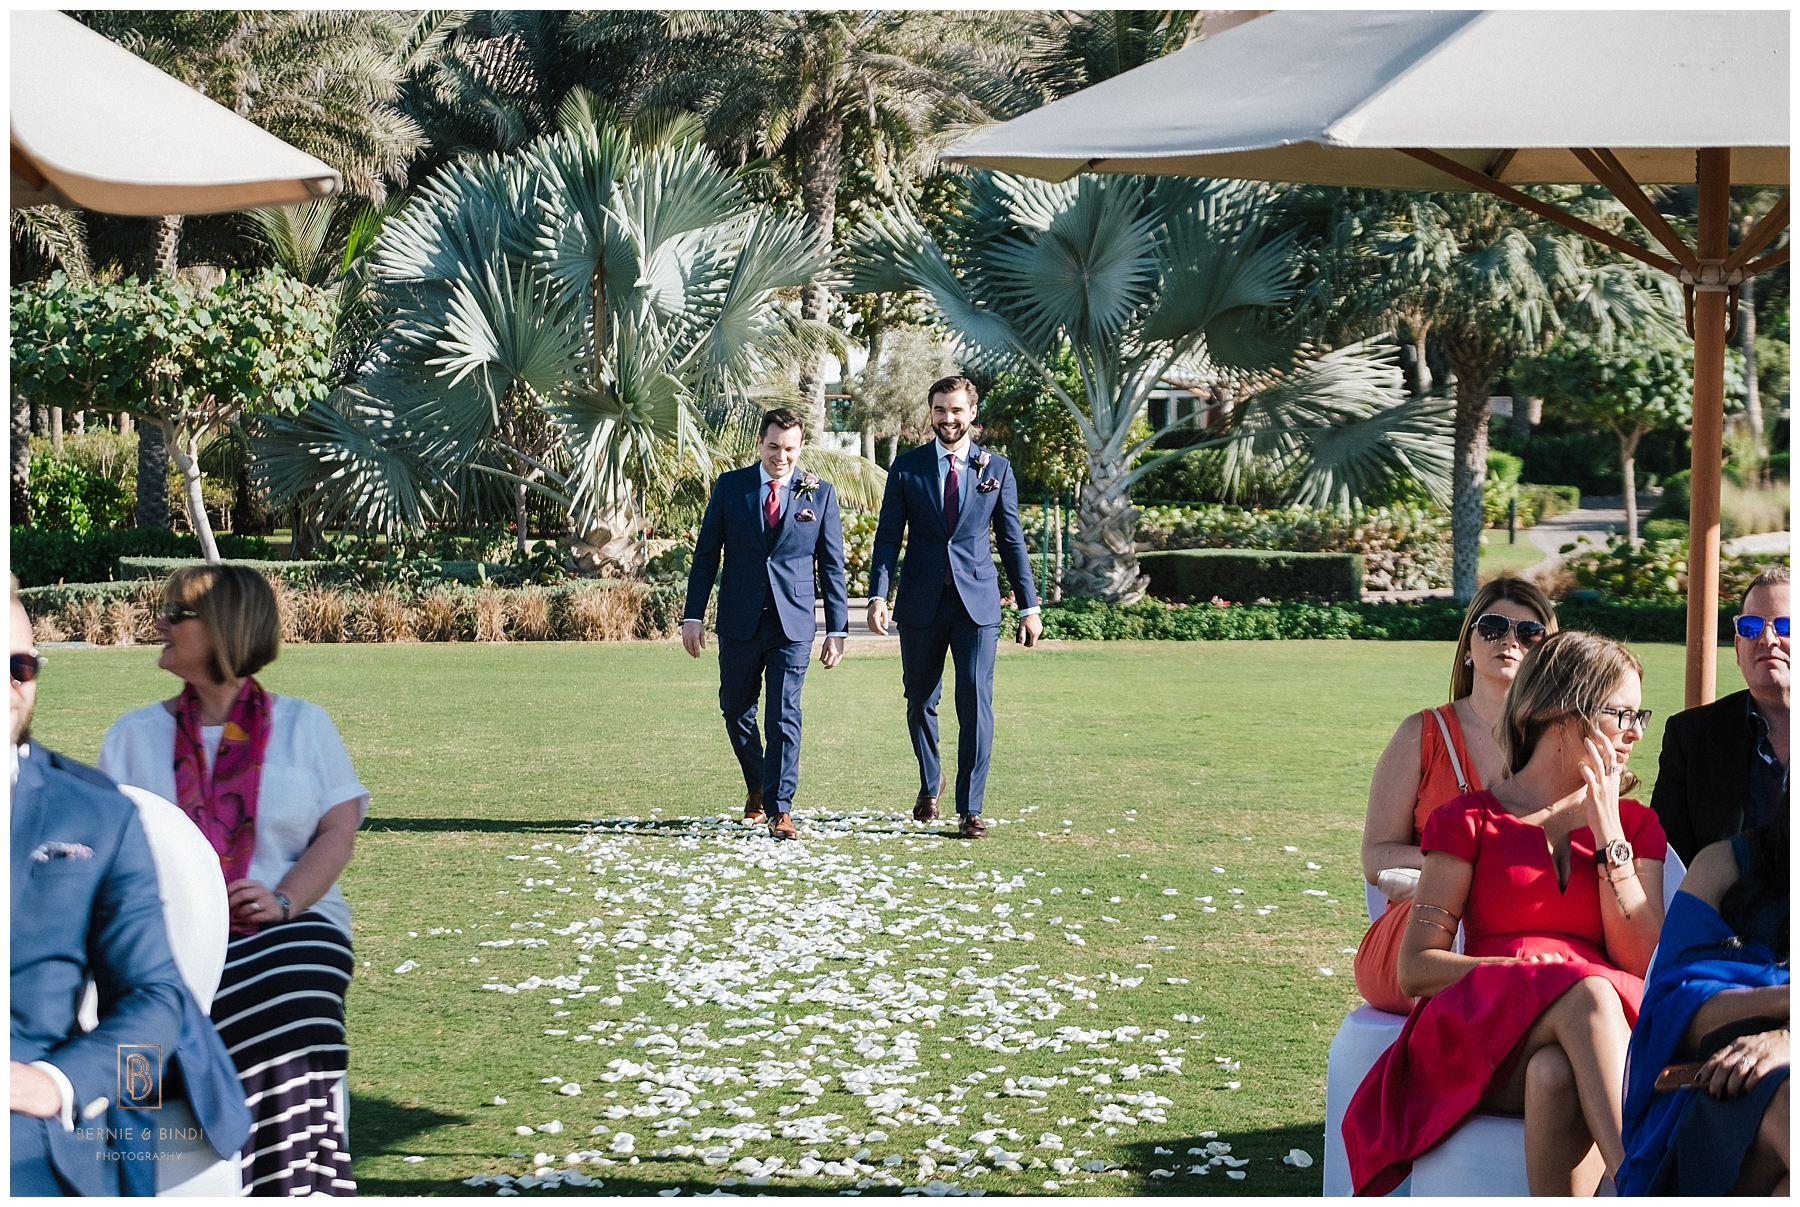 dubai wedding photographer, ritz carlton dubai wedding